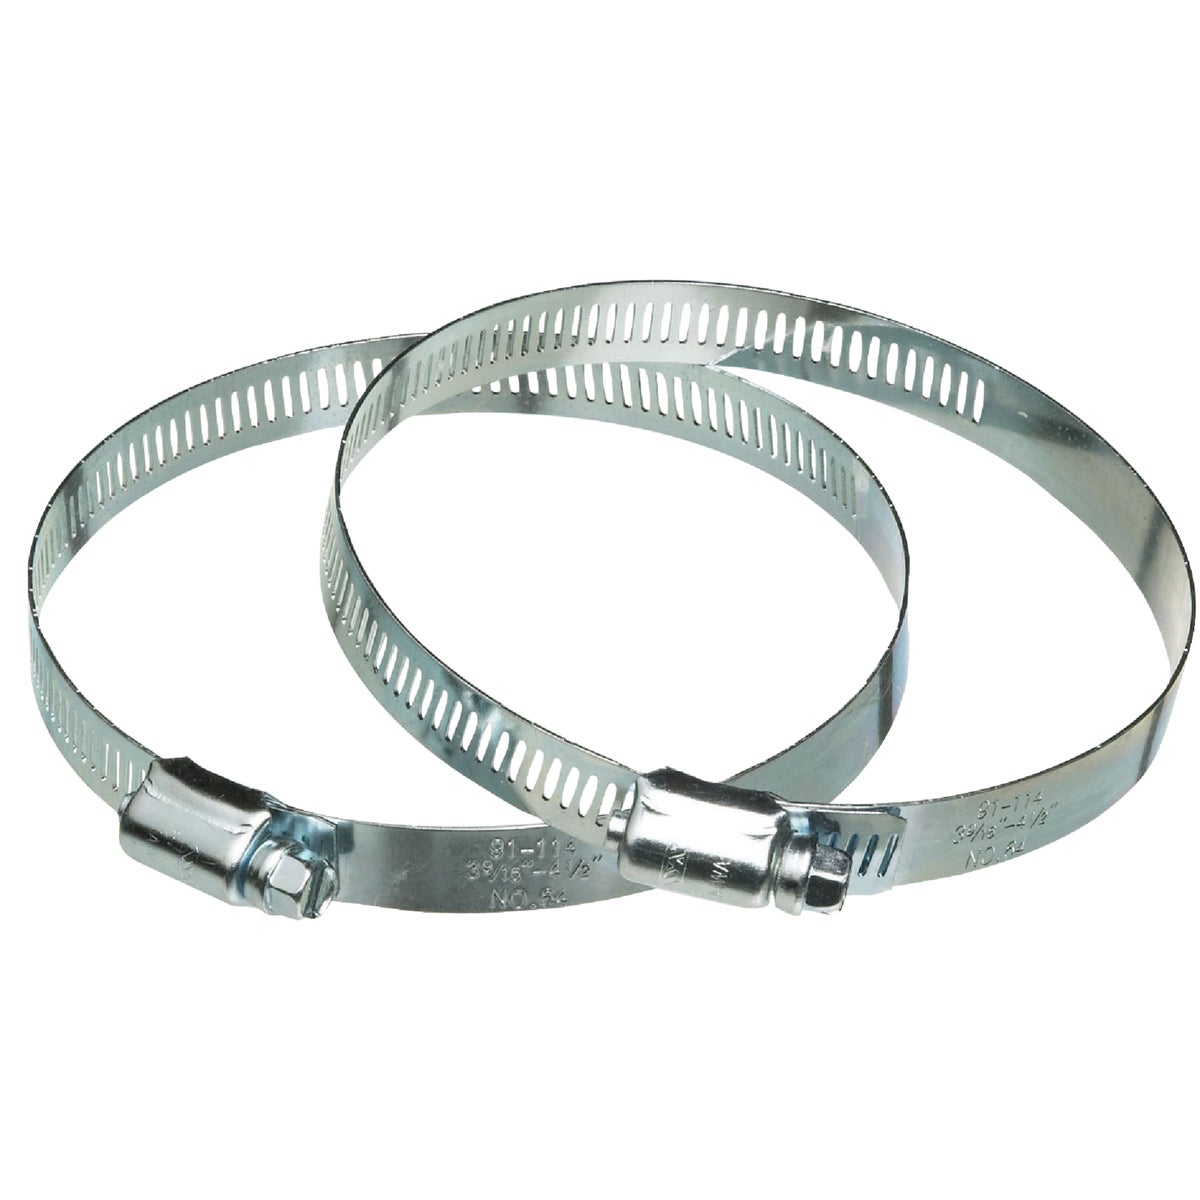 "2PK 3"" METAL DUCT CLAMP - 2MC3E by Dundas Jafine"